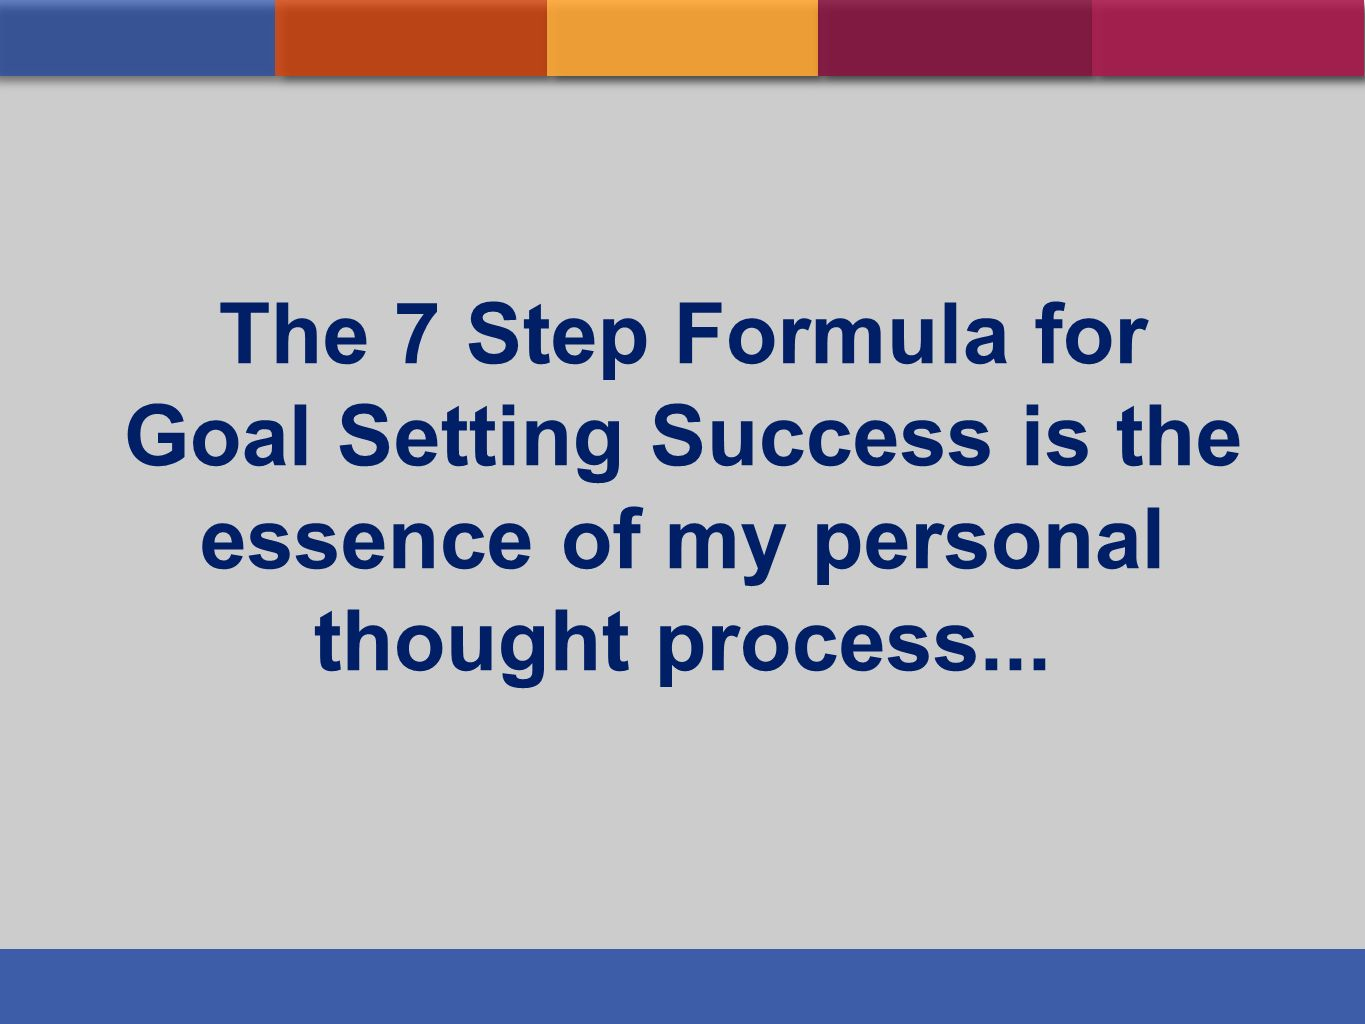 The 7 Step Formula for Goal Setting Success is the essence of my personal thought process...